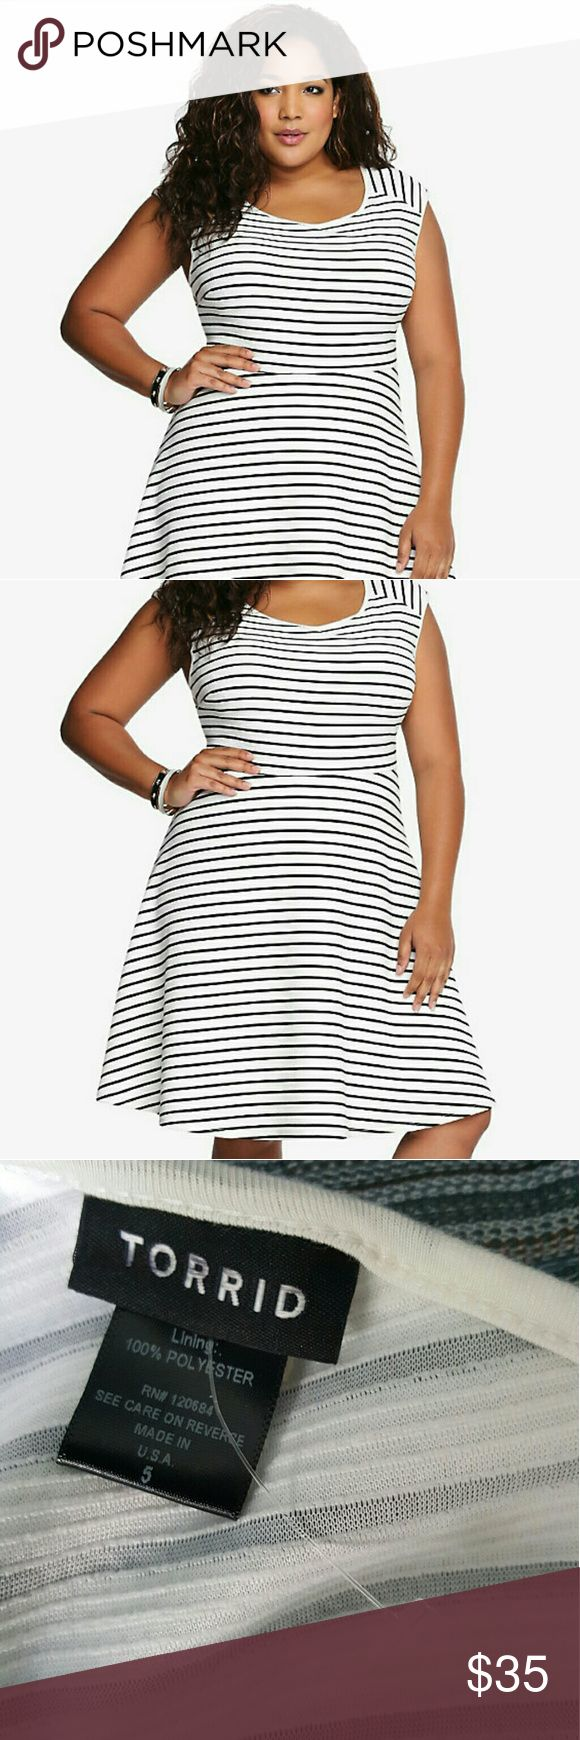 Torrid sz 5 black and white Skater Dress Brand new. I have this in another color. It is so flattering and so comfortable. Torrid  Dresses Maxi